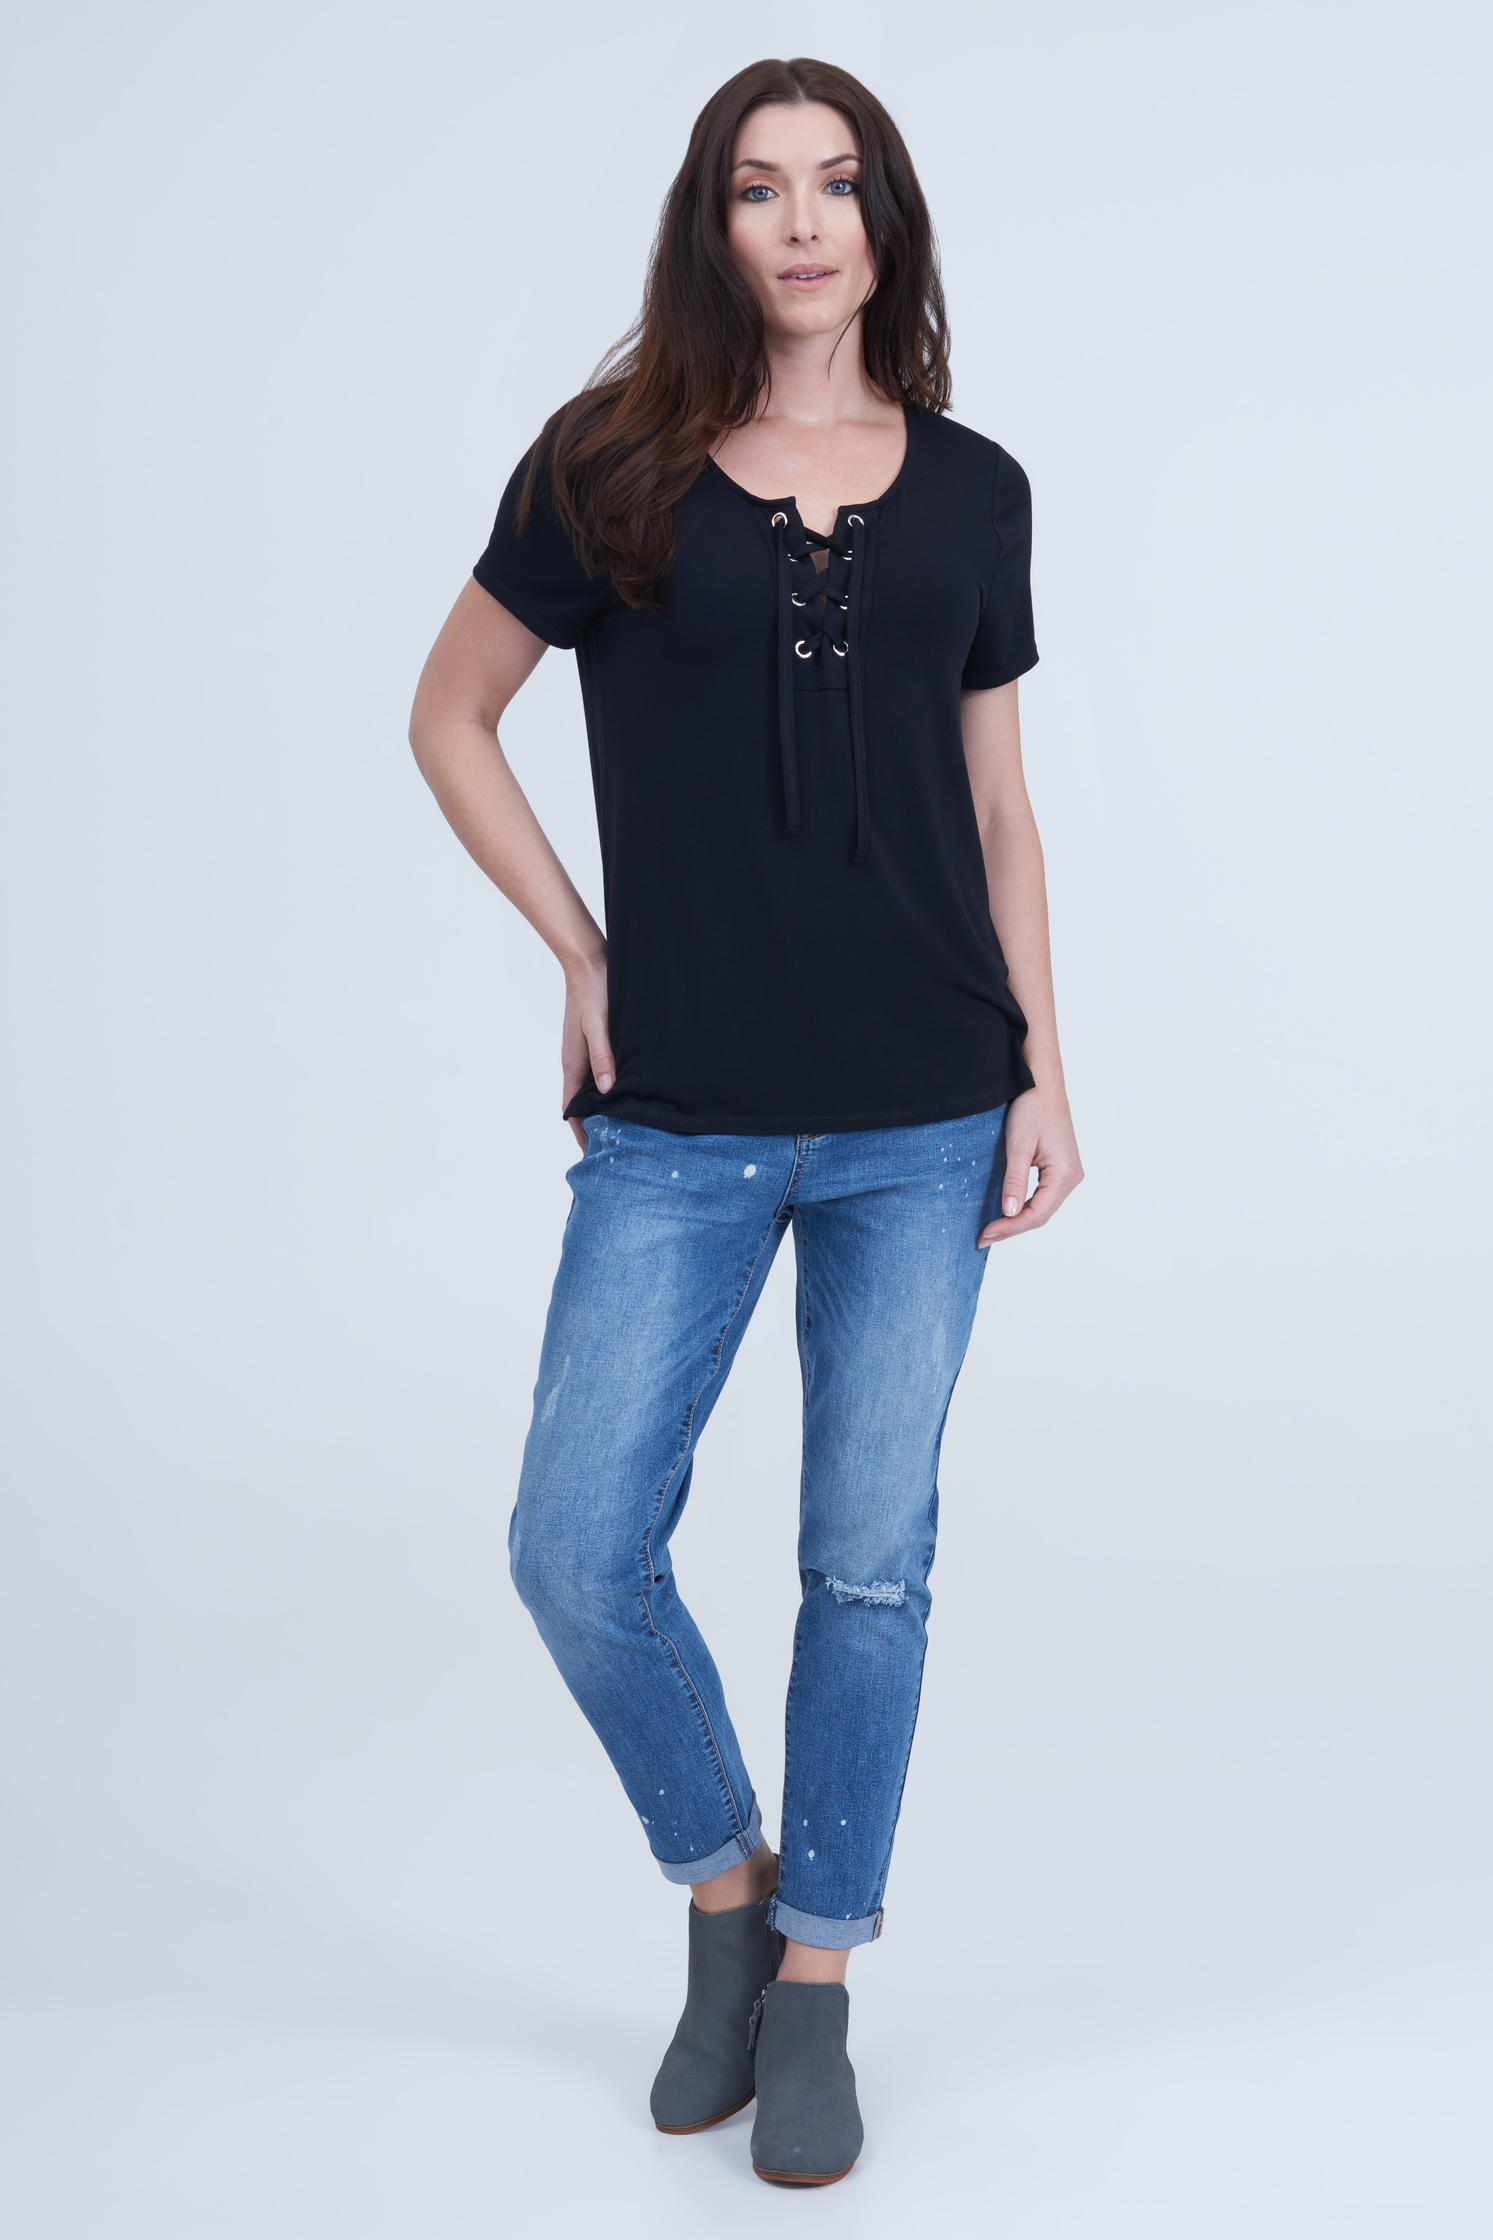 seven7 jeans lace up commet tee